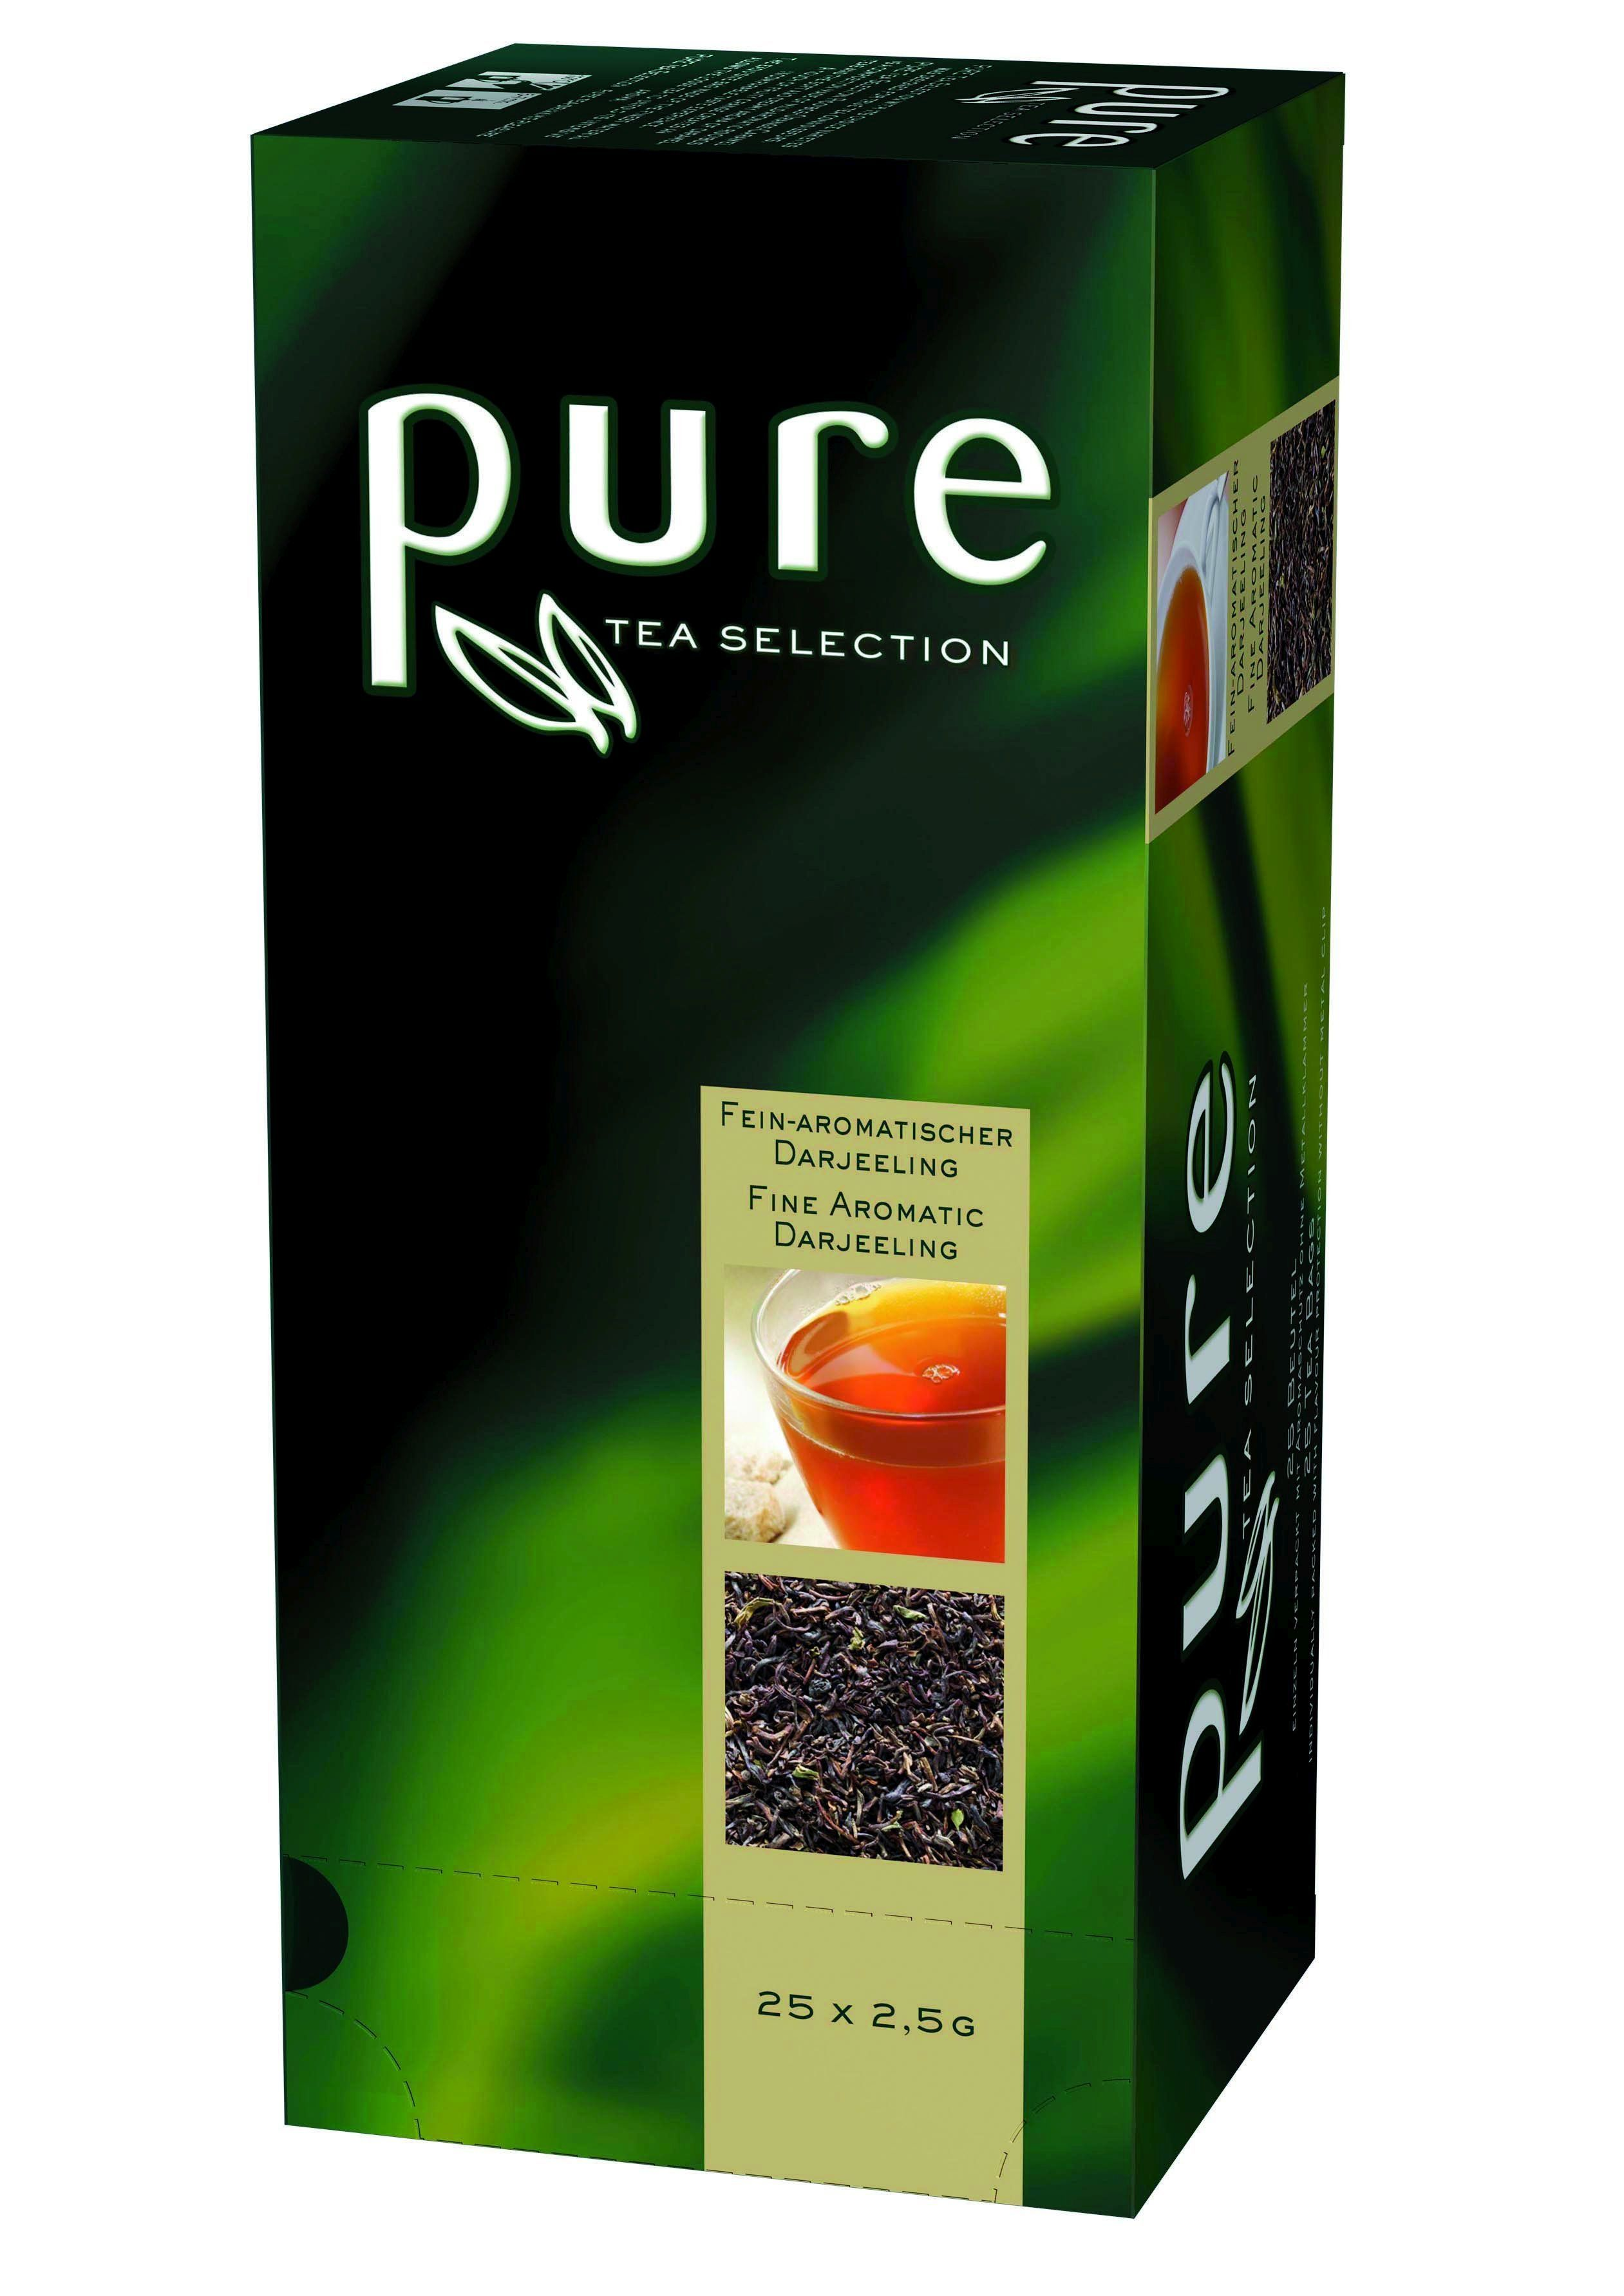 Tchibo PURE Tea Selection - Darjeeling